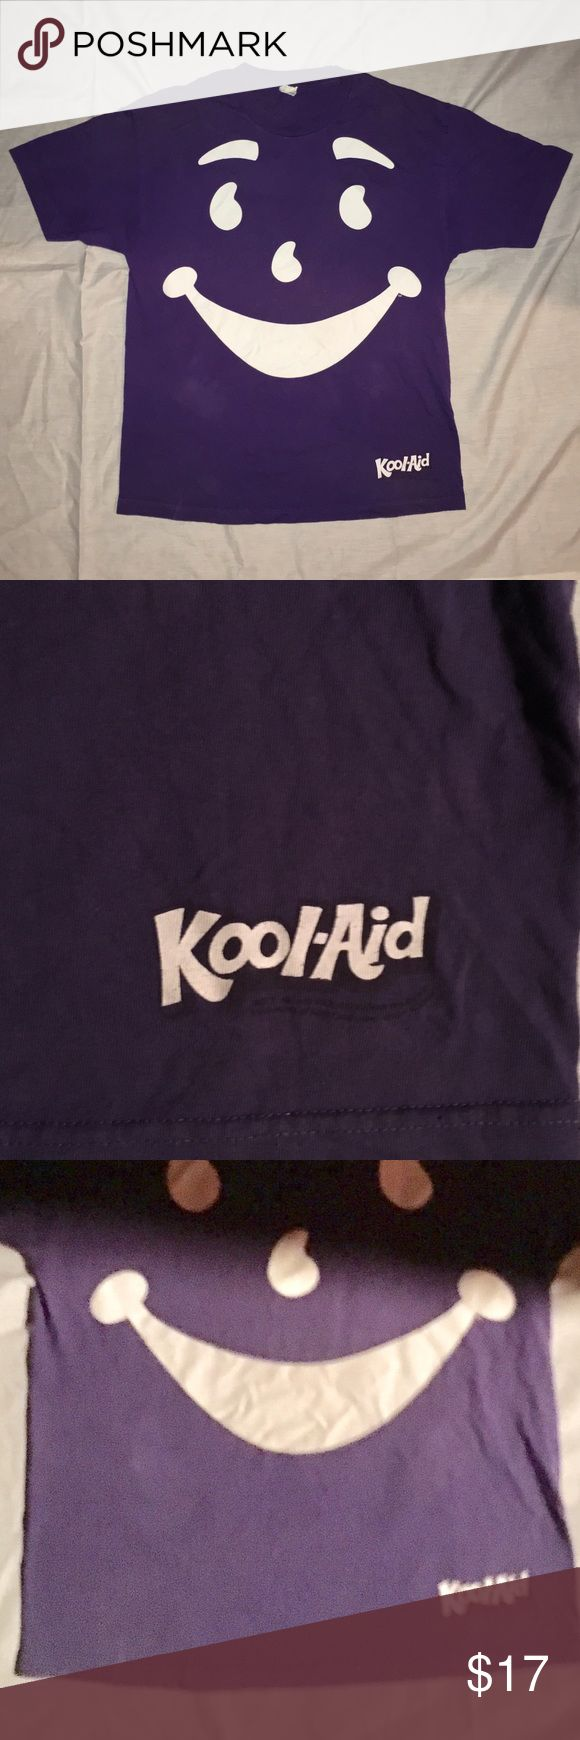 Old school kool-aid man t shirt Purple kool-aid man t shirt. No holes stains or pulls. It has some fading - see third pic for more accurate color. Alstyle brand - retro hipster vintage Tops Tees - Short Sleeve